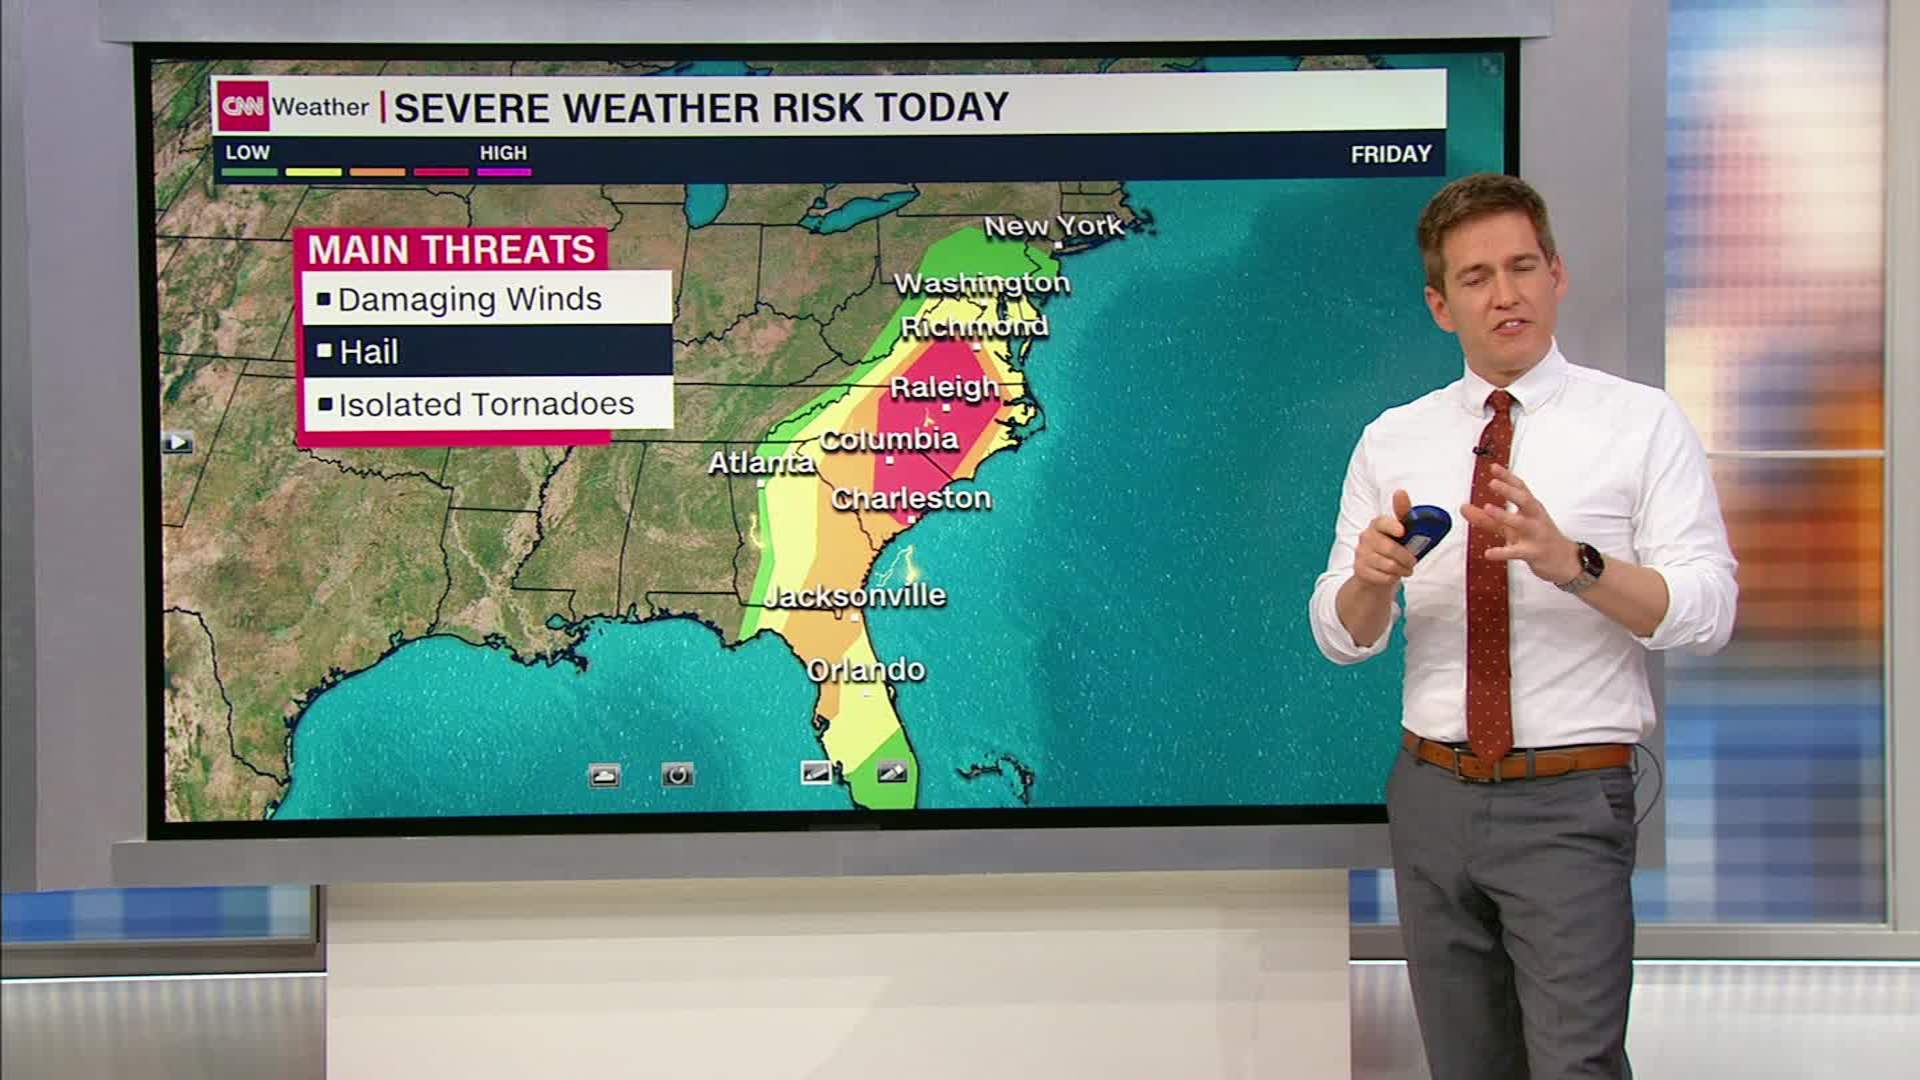 weather map of east coast Severe Weather Along East Coast Friday Cnn Video weather map of east coast